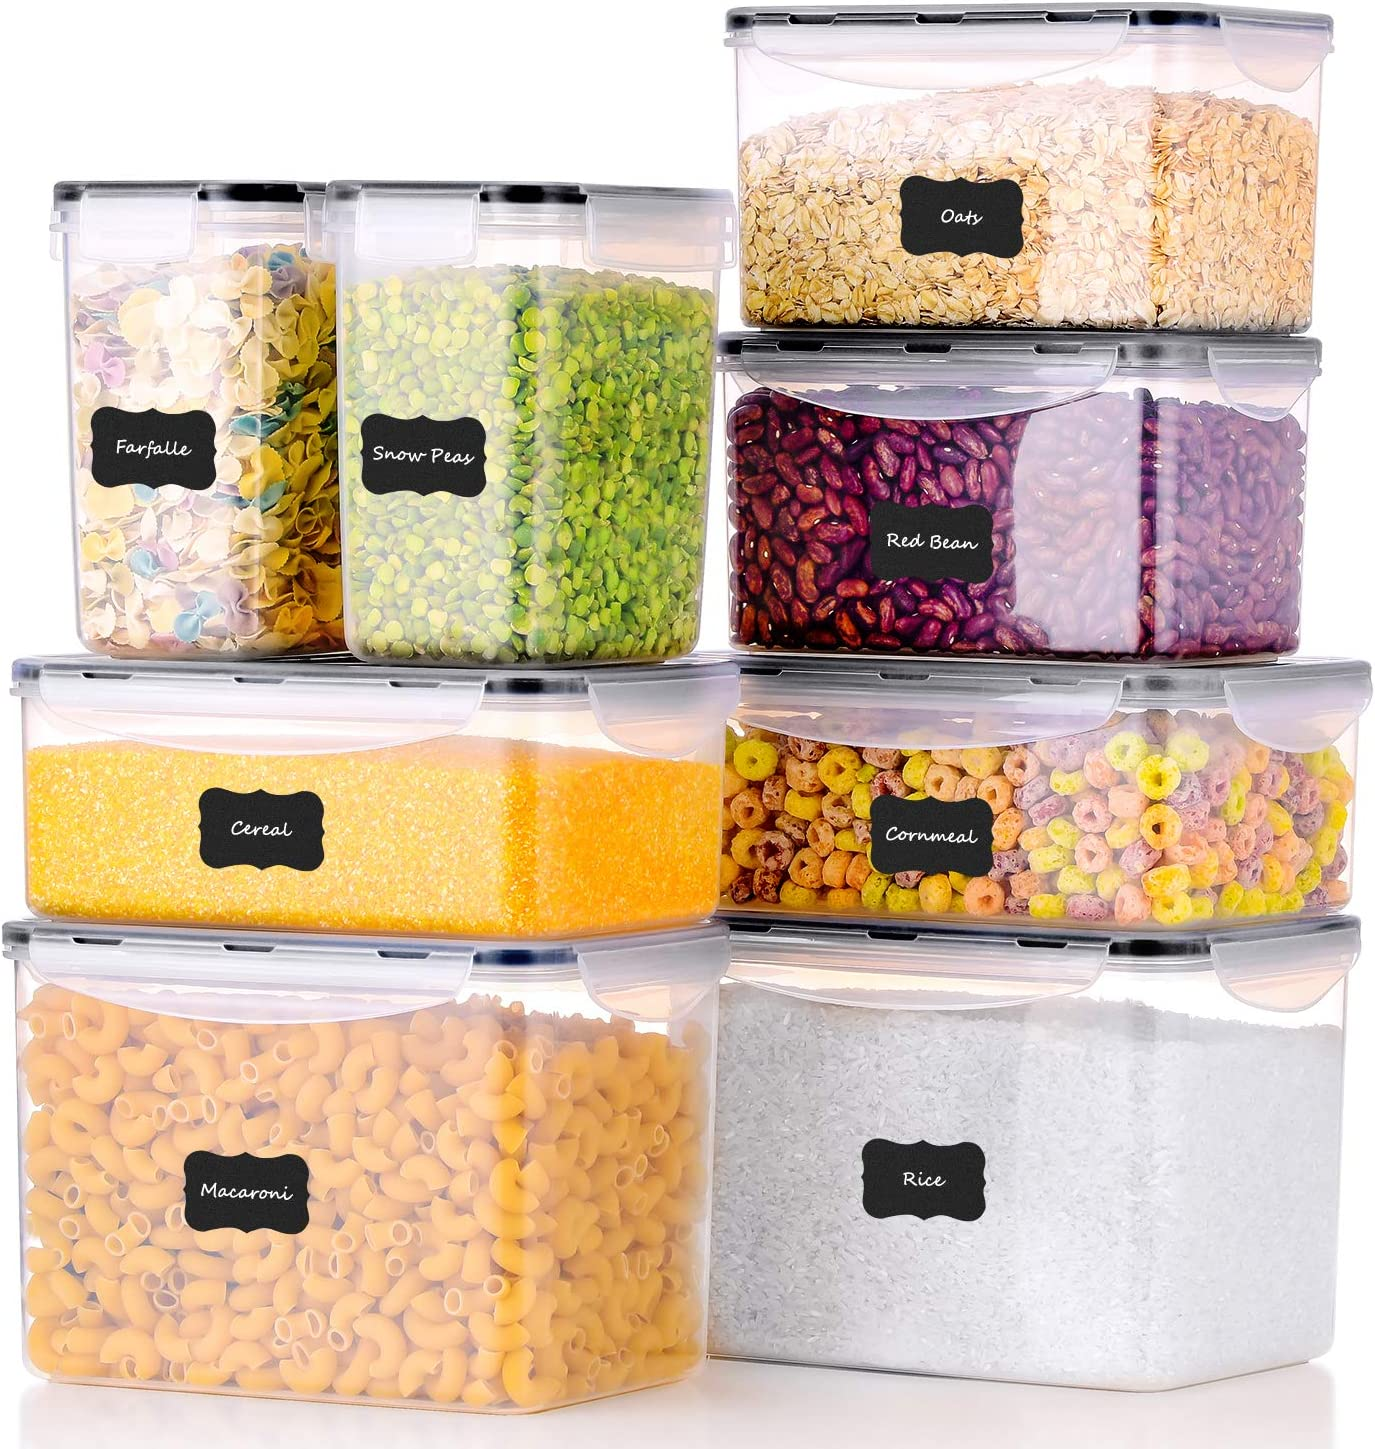 ME.FAN Food Storage Containers [Set of 8] Airtight Storage Keeper with 24 Chalkboard labels Ideal for Cereal, Sugar, Flour, Baking Supplies - BPA Free - Clear Plastic with Black Lids